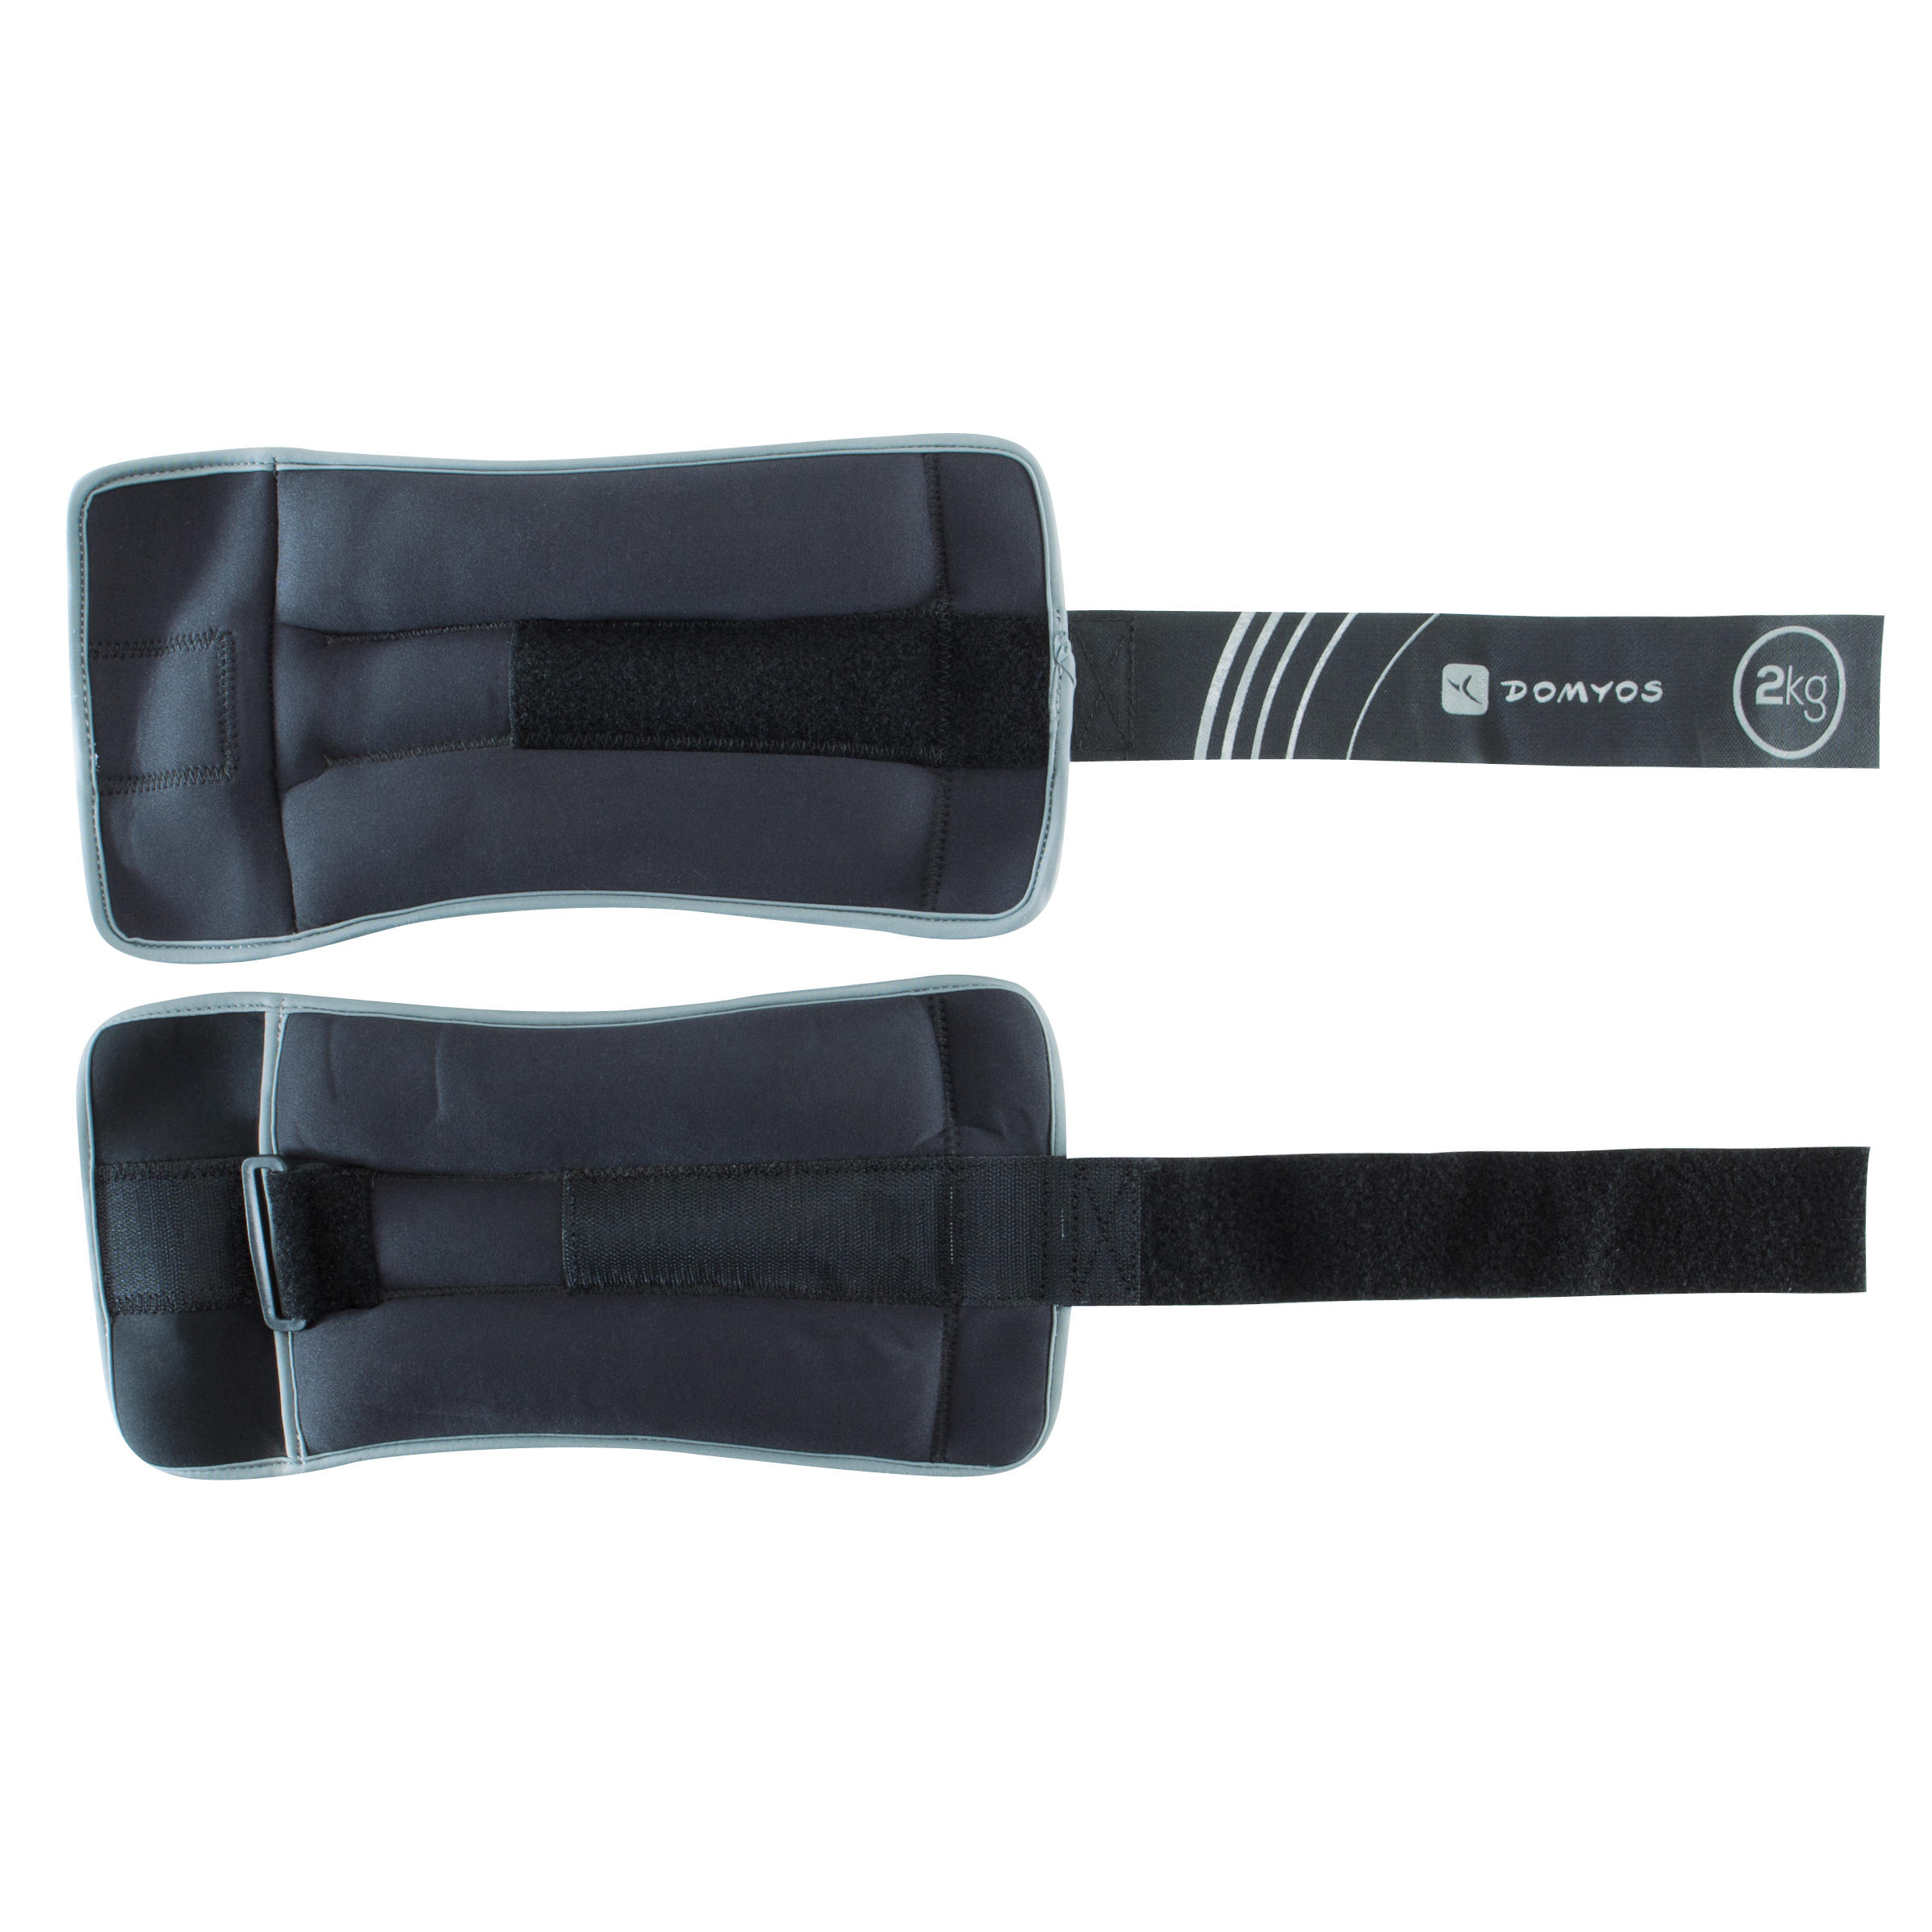 Pilates Toning Adjustable Wrist and Ankle Weights Twin-Pack 2 kg